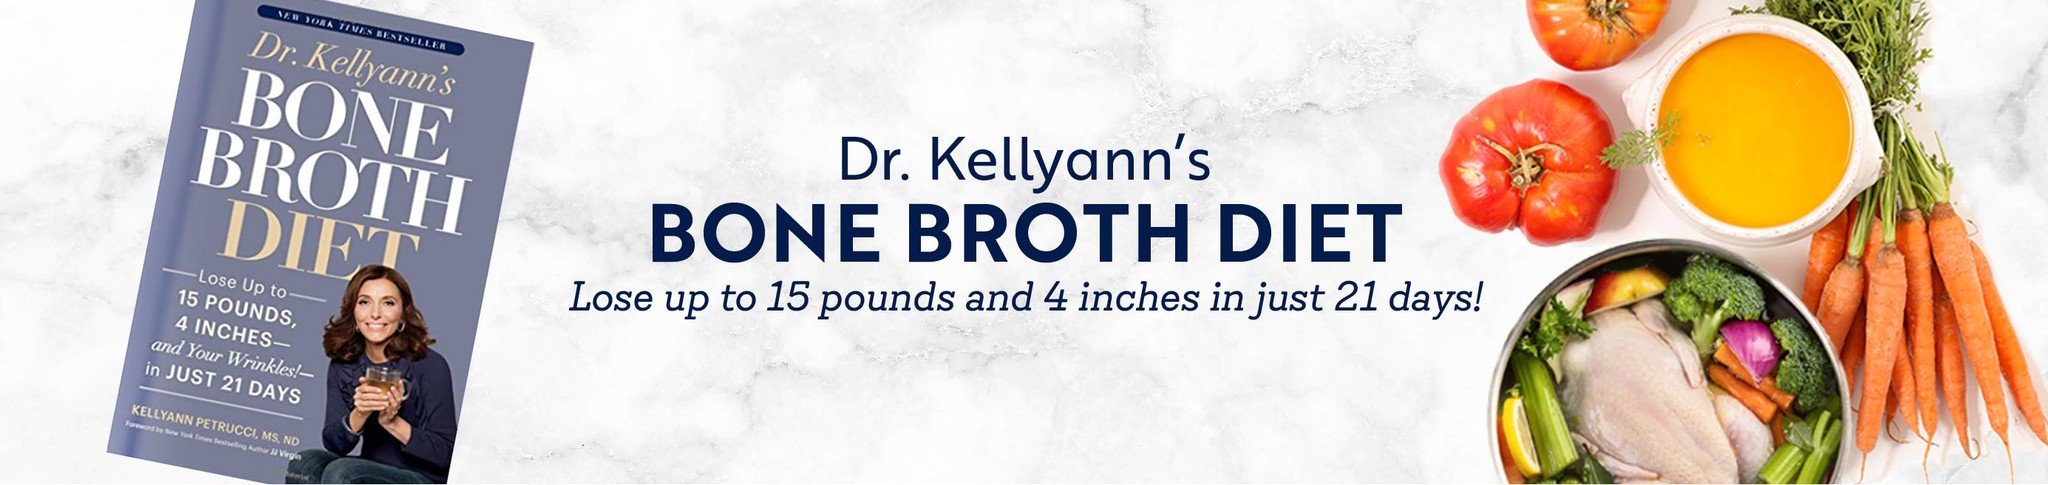 Dr. Kellyann's Bone Broth Diet book with a pot of bone broth and vegetables